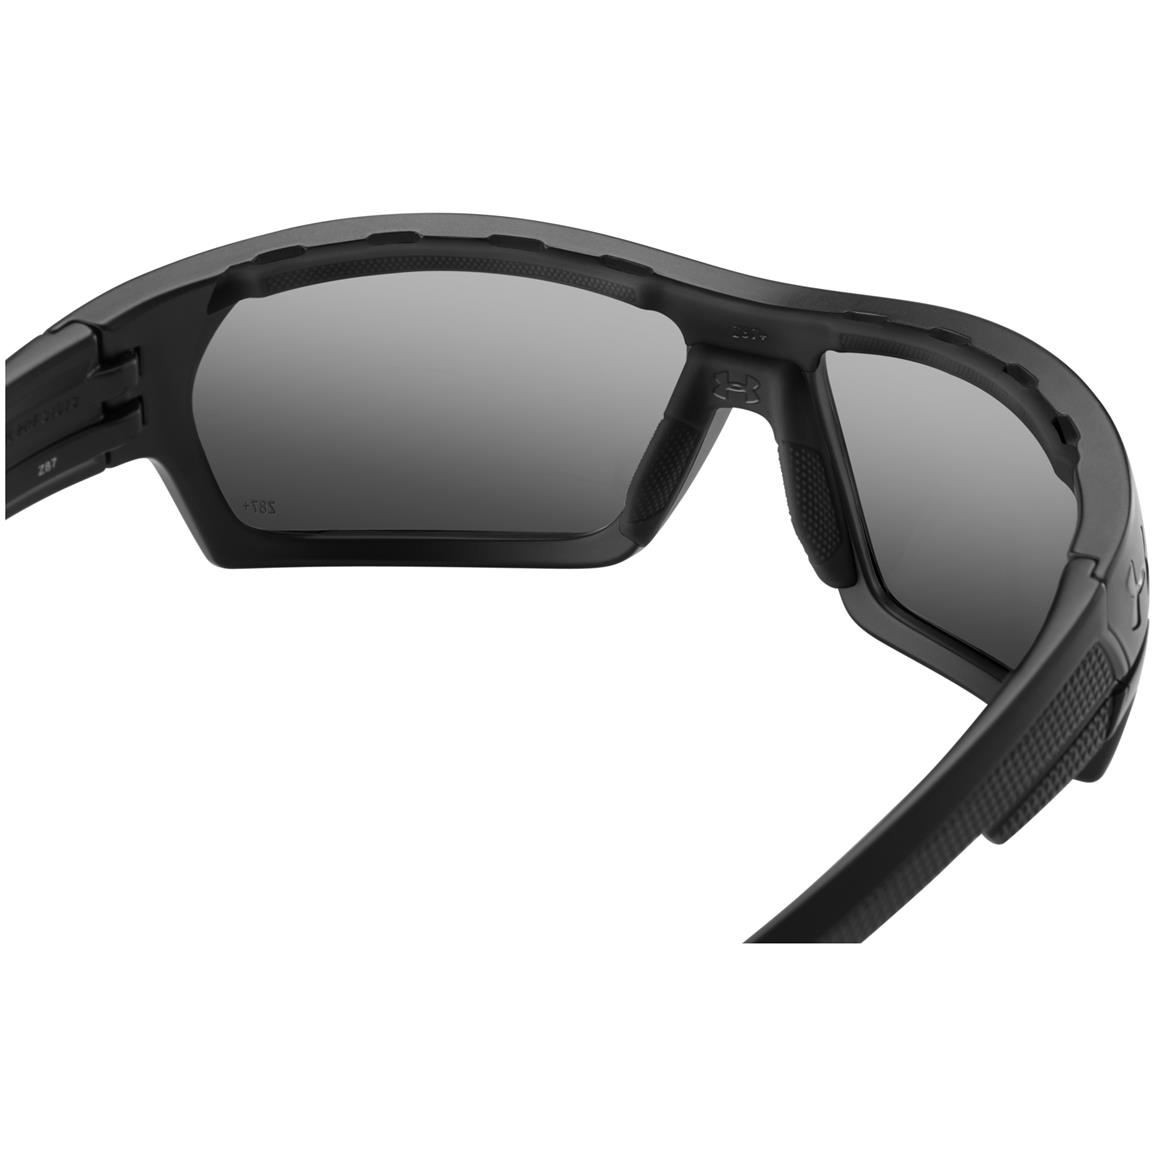 98f2517dffe8b Under Armour Battlewrap Ballistic Sunglasses - 641518